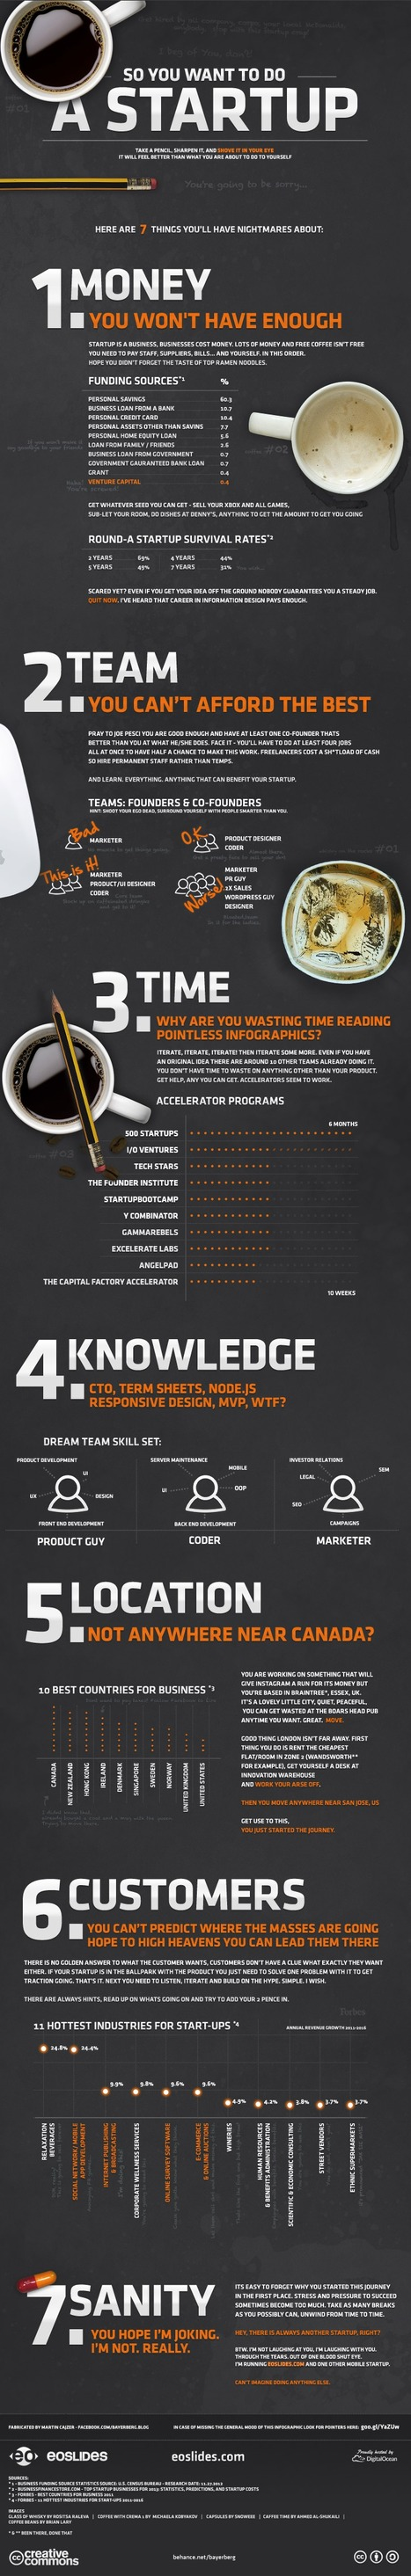 Startups: Are they worth it? [Infographic]   BestInfographics.co   The Best Infographics   Scoop.it